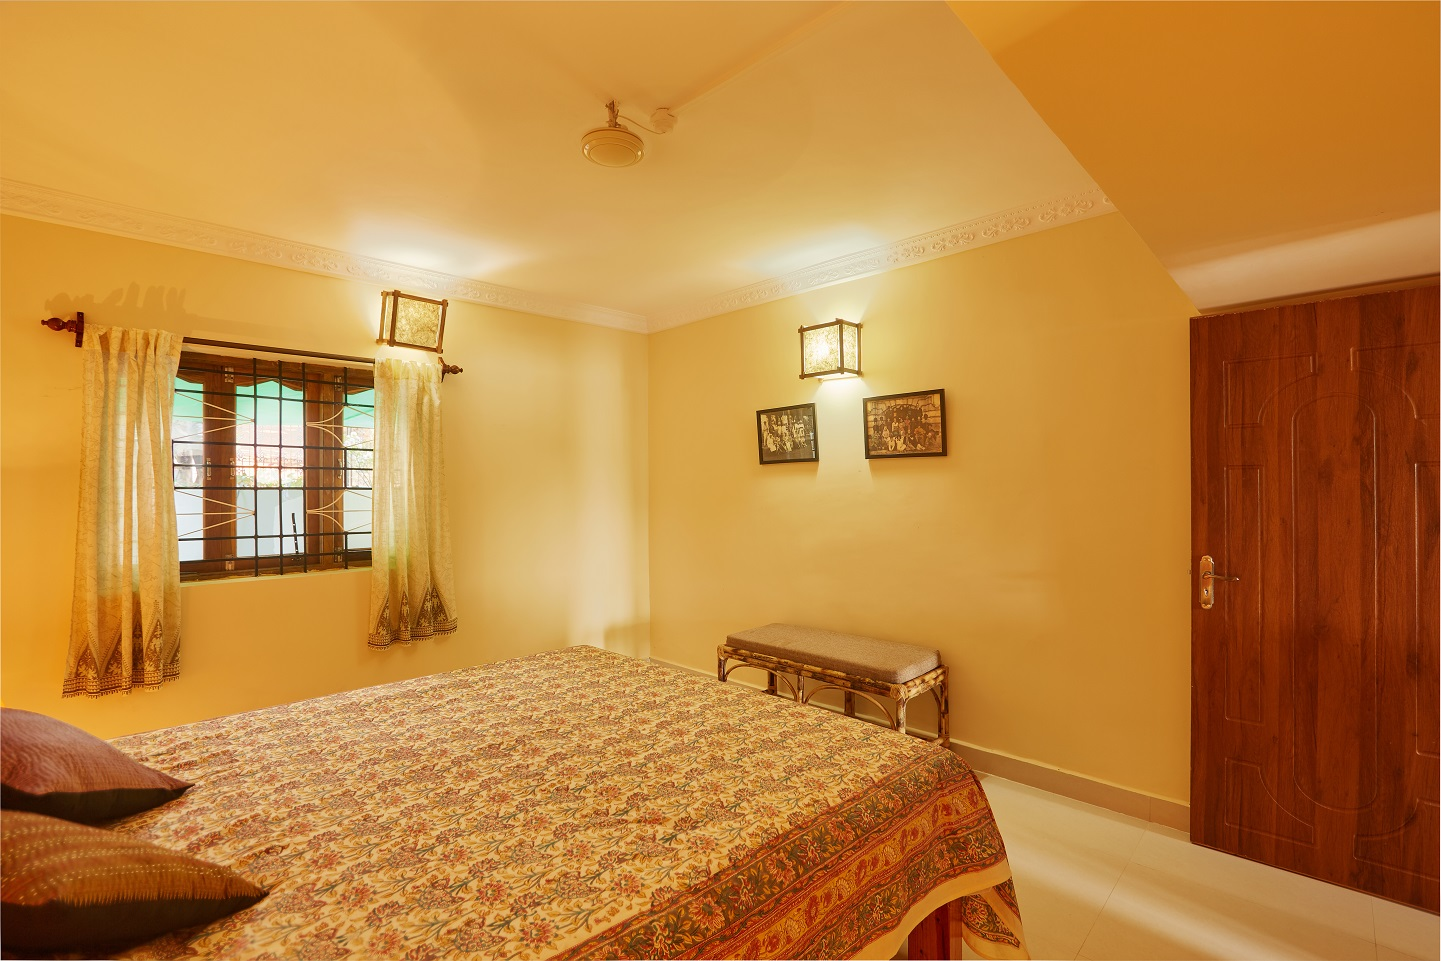 Two Bedroom Self-Service AC Apartment, Talpona, Goa bedroom 2